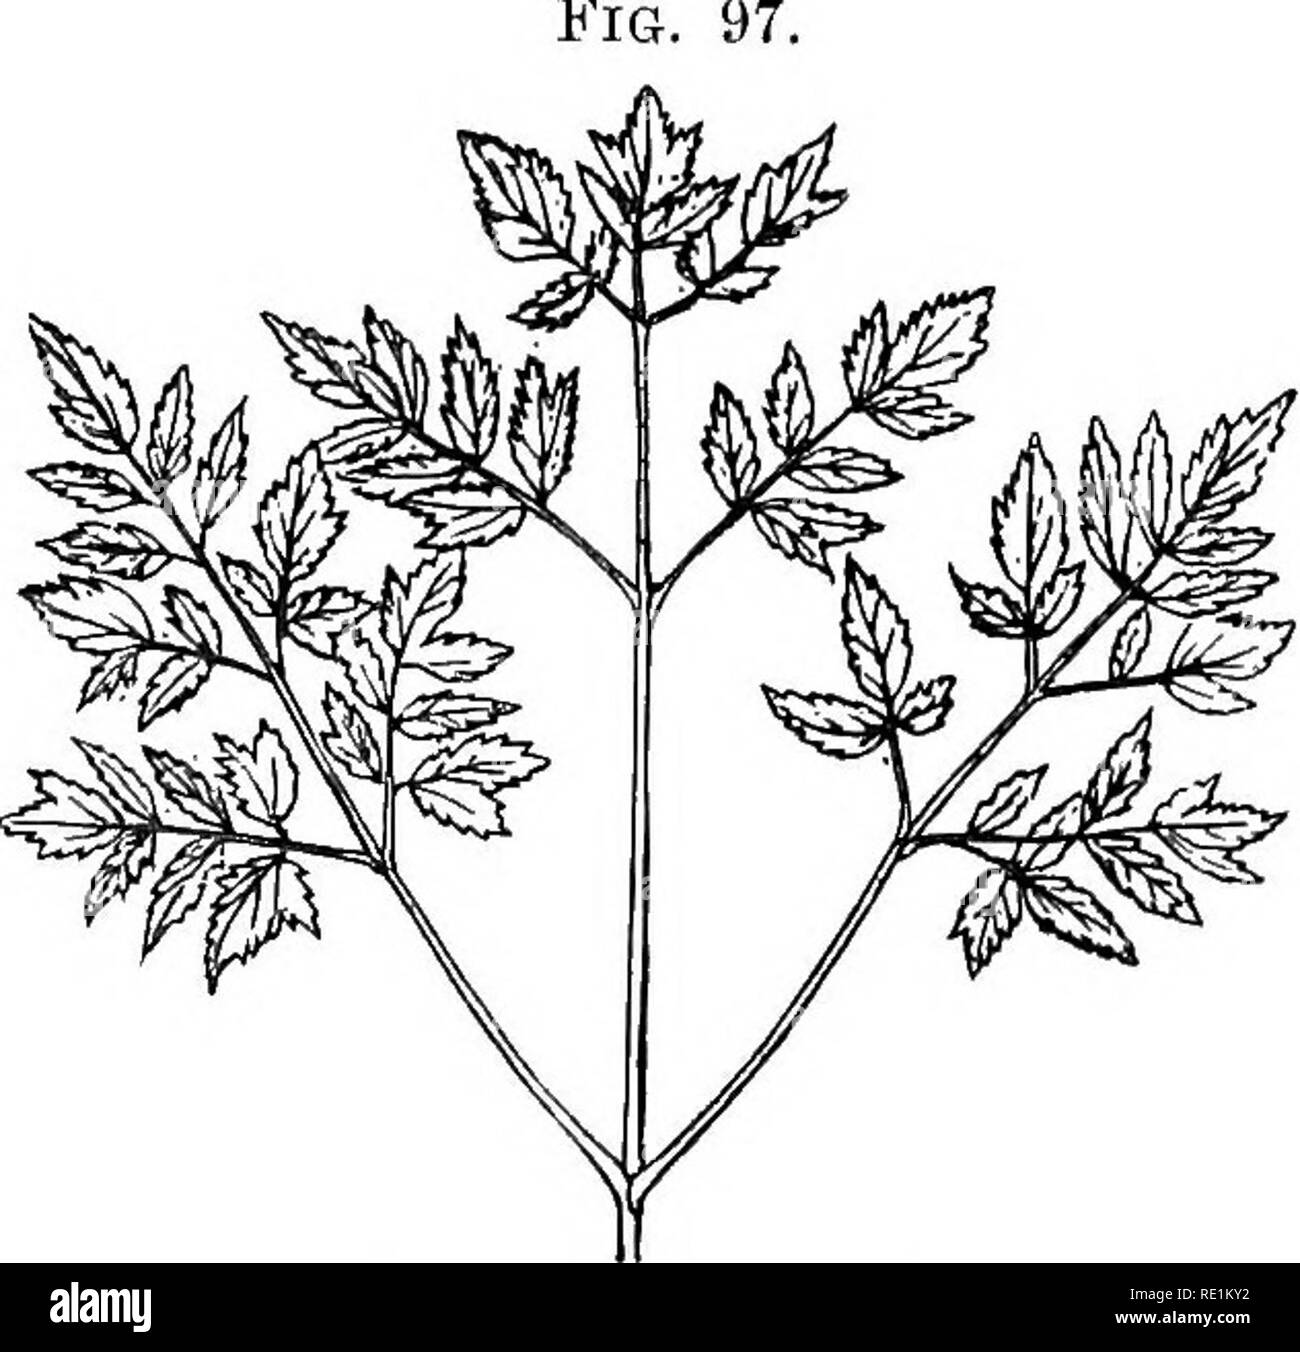 . A manual of botany. Botany. Digitate leaf of a Lupin (Palmate type). i^'(7. 96. Digitate leaf of Potentilla. The EpipodAum or Leaf-hladc.—As already indicated, this part of the leaf shows a very great variety of form, ranging from a cylindrical outgrowth to a very much dissected and flattened Fig.. Fig, 97. Tripinuate leaf. one. It usually consists of an axis which shows more or less evidence of branching, the axis itself and its several branches becoming winged, or remaining more or less cylindrical.. Please note that these images are extracted from scanned page images that may have been di Stock Photo